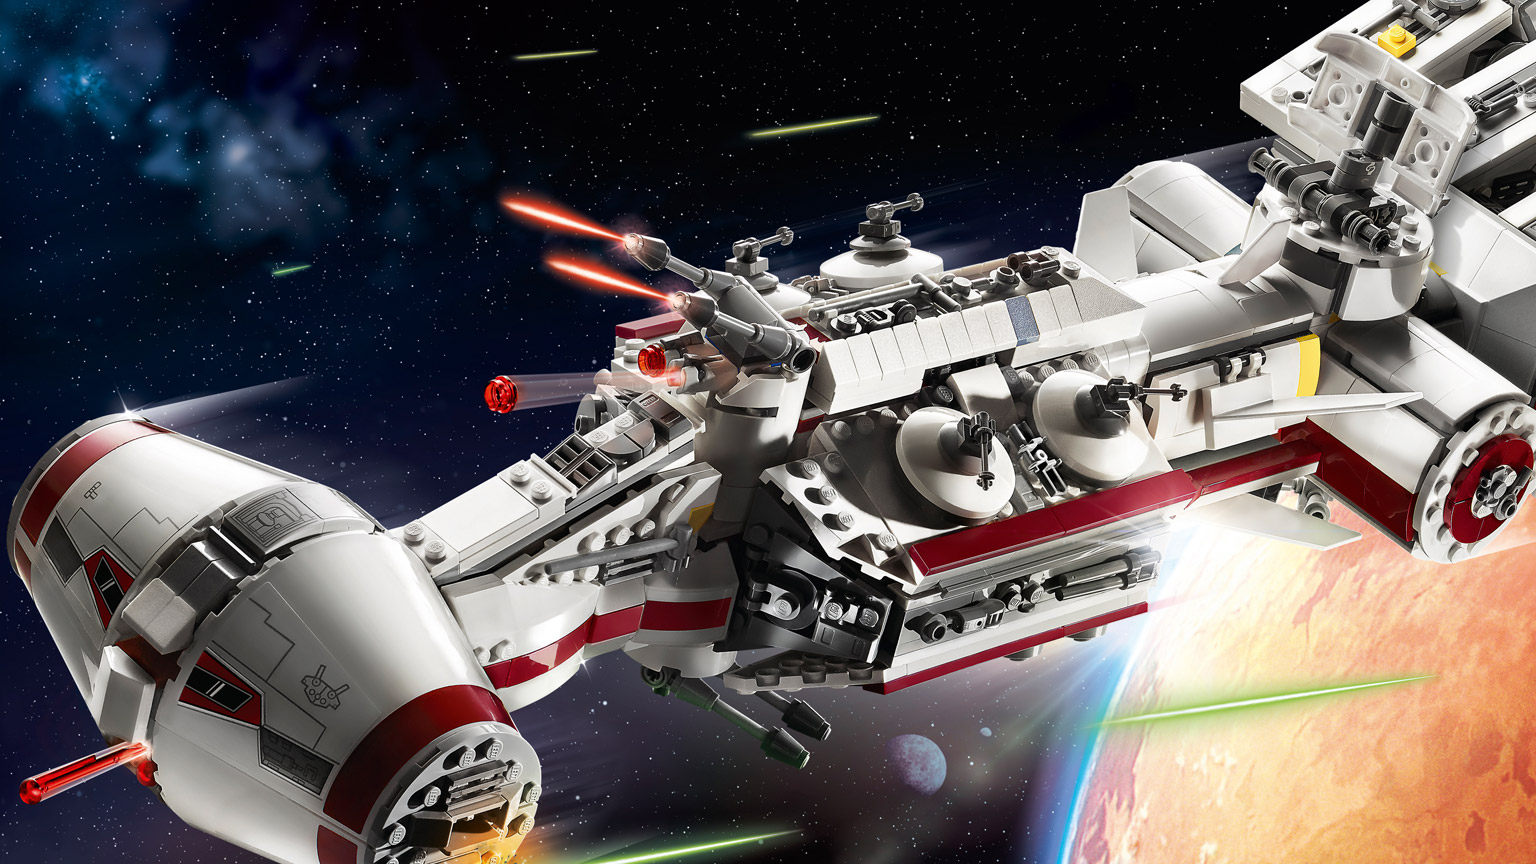 Swcc 2019 6 Things We Learned From The Lego Star Wars 20th